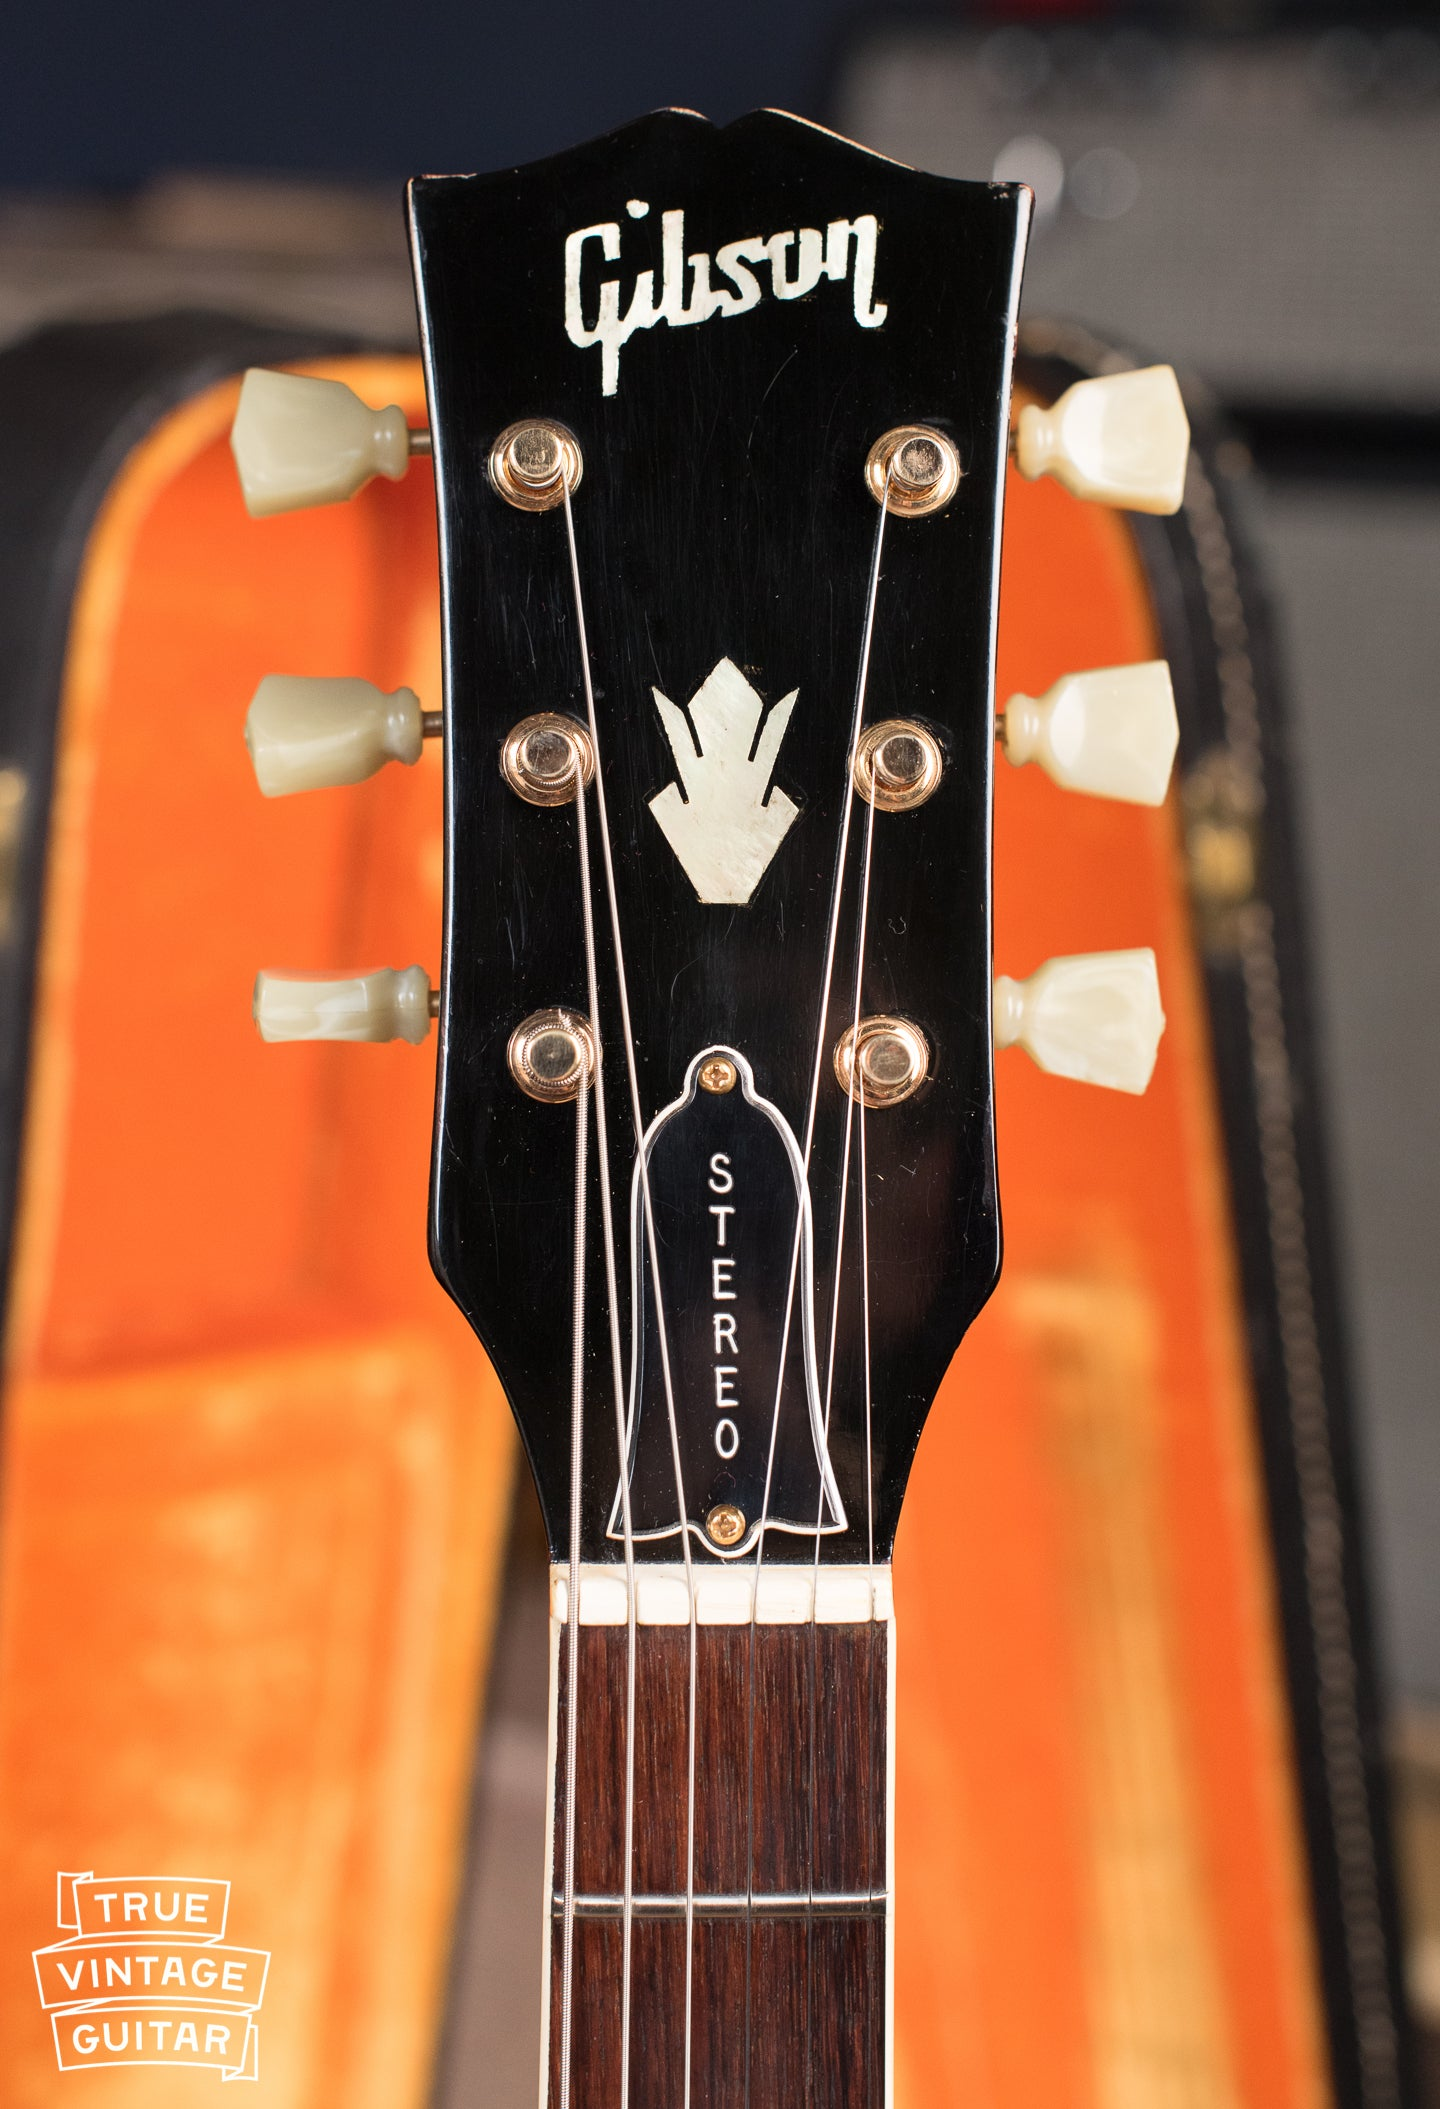 Gibson ES-345 late 1960s skinny neck and headstock with pearl Gibson logo